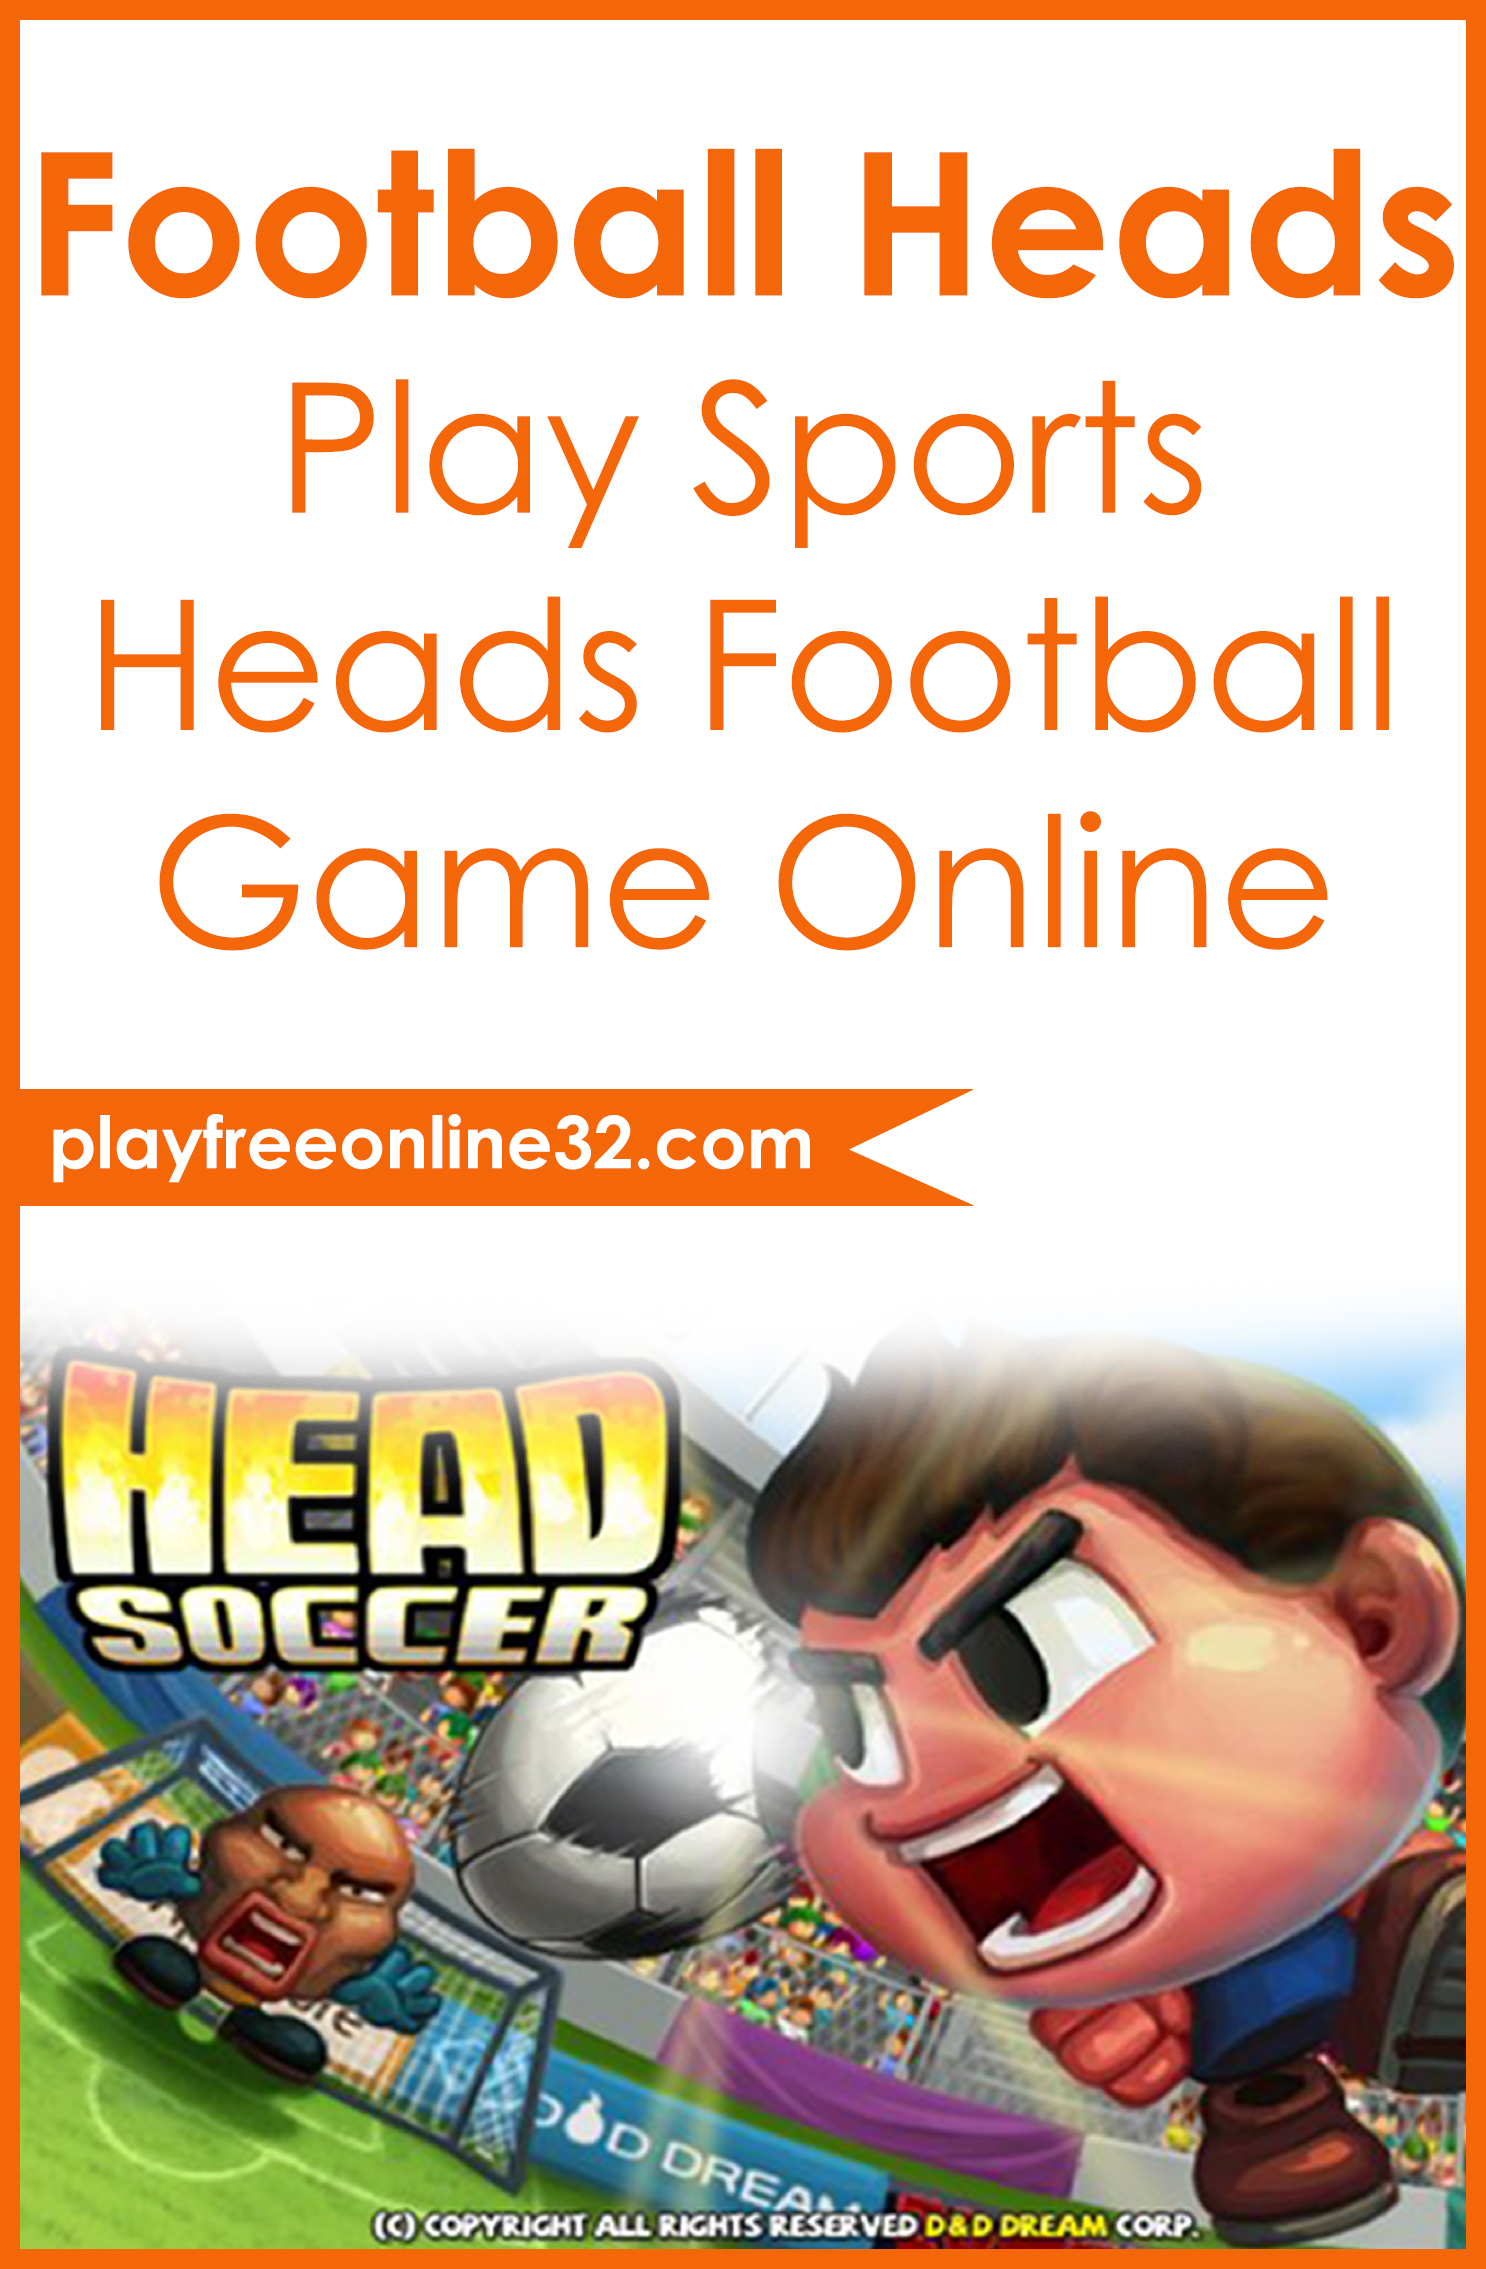 Football Heads • Play Sports Heads Football Game Online